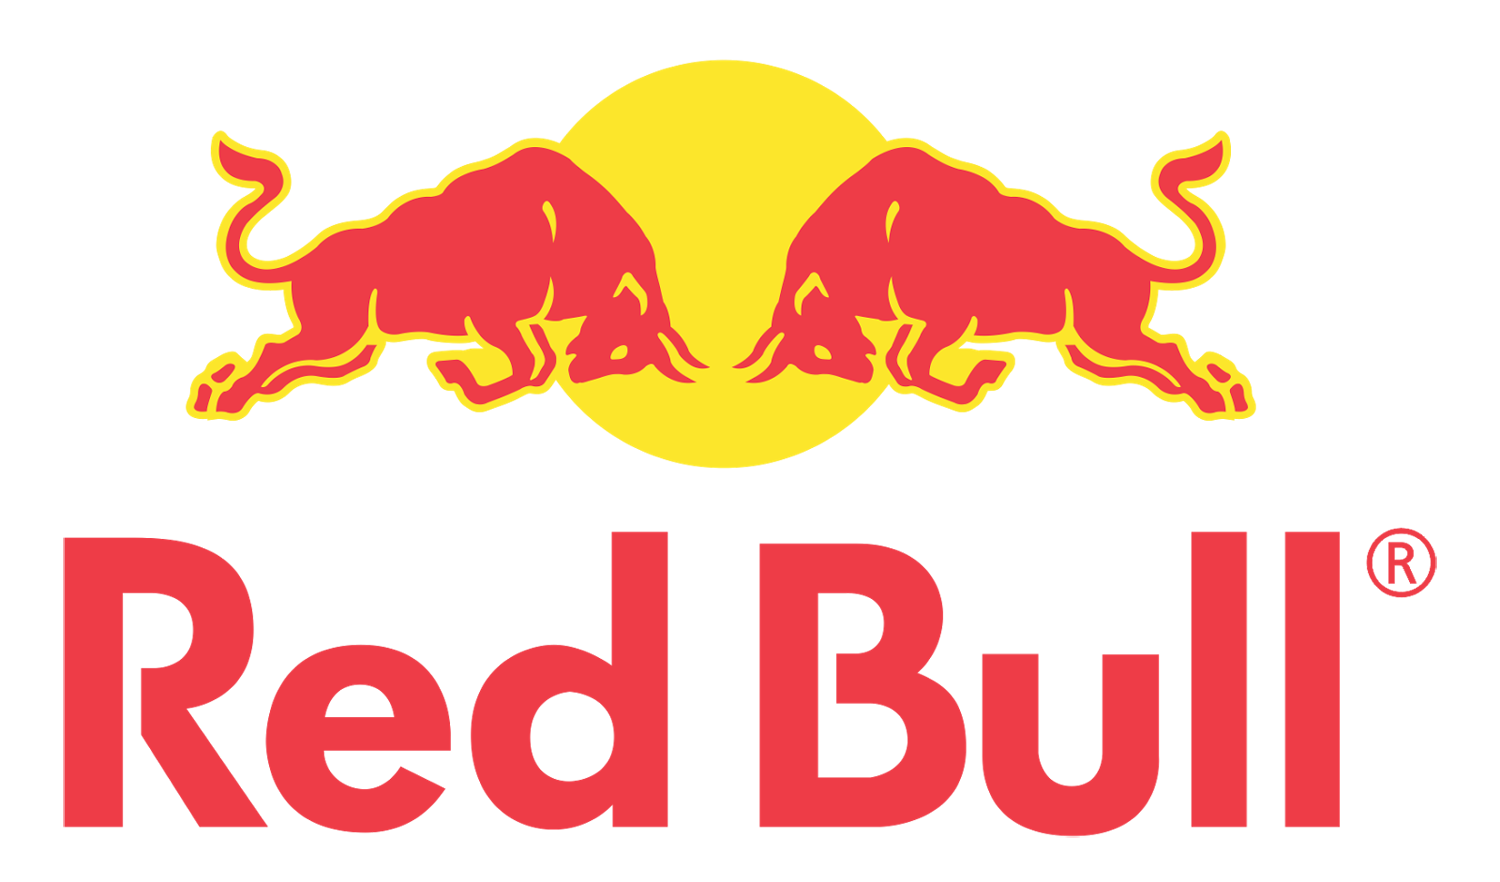 Red Bull Marketing Strategy 6 Lessons To Learn And Apply To Your